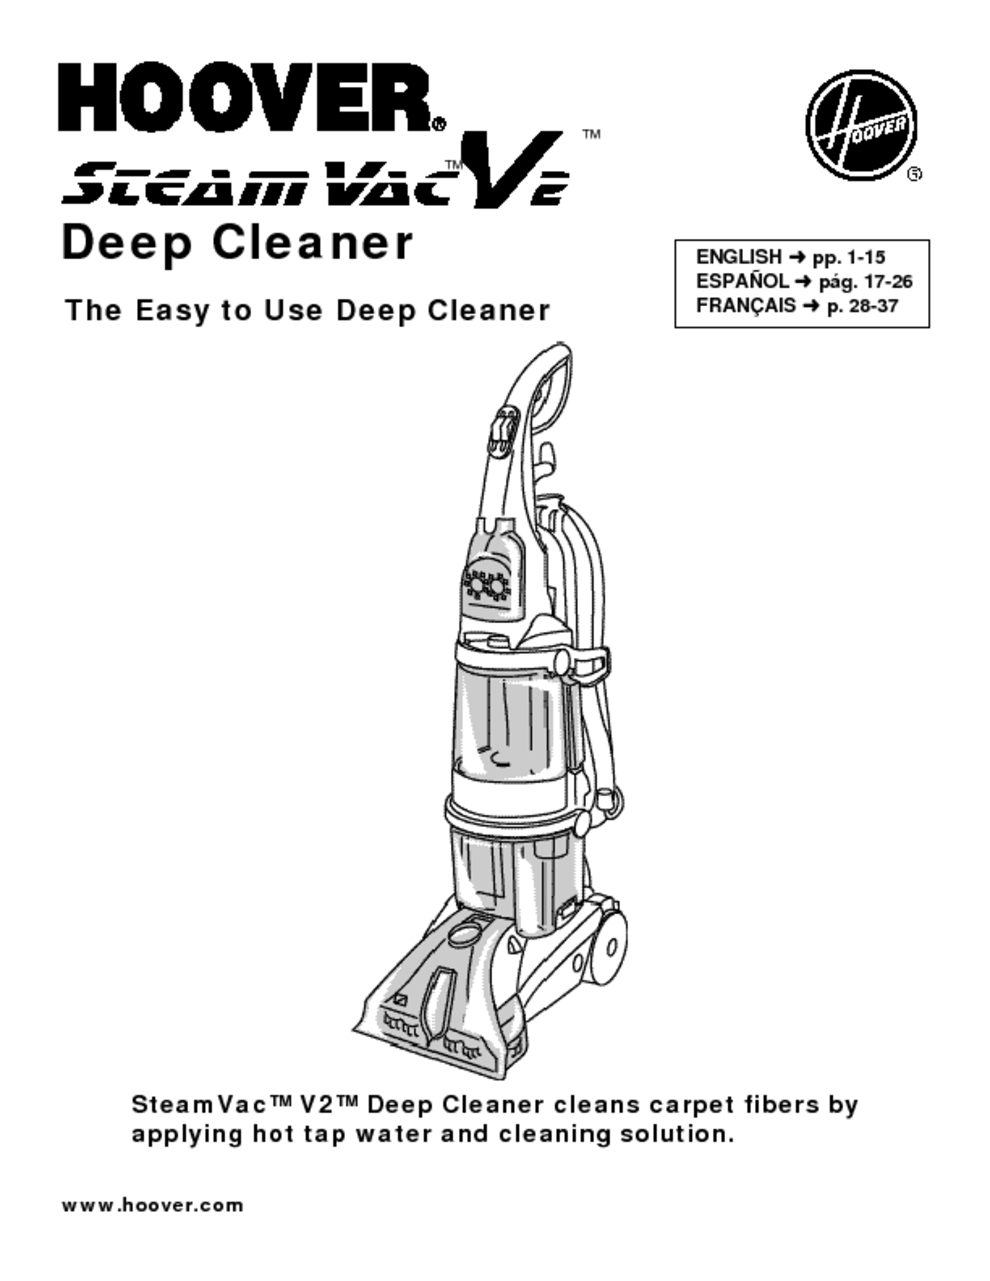 Hoover Steamvac Spinscrub Carpet Cleaner Manual